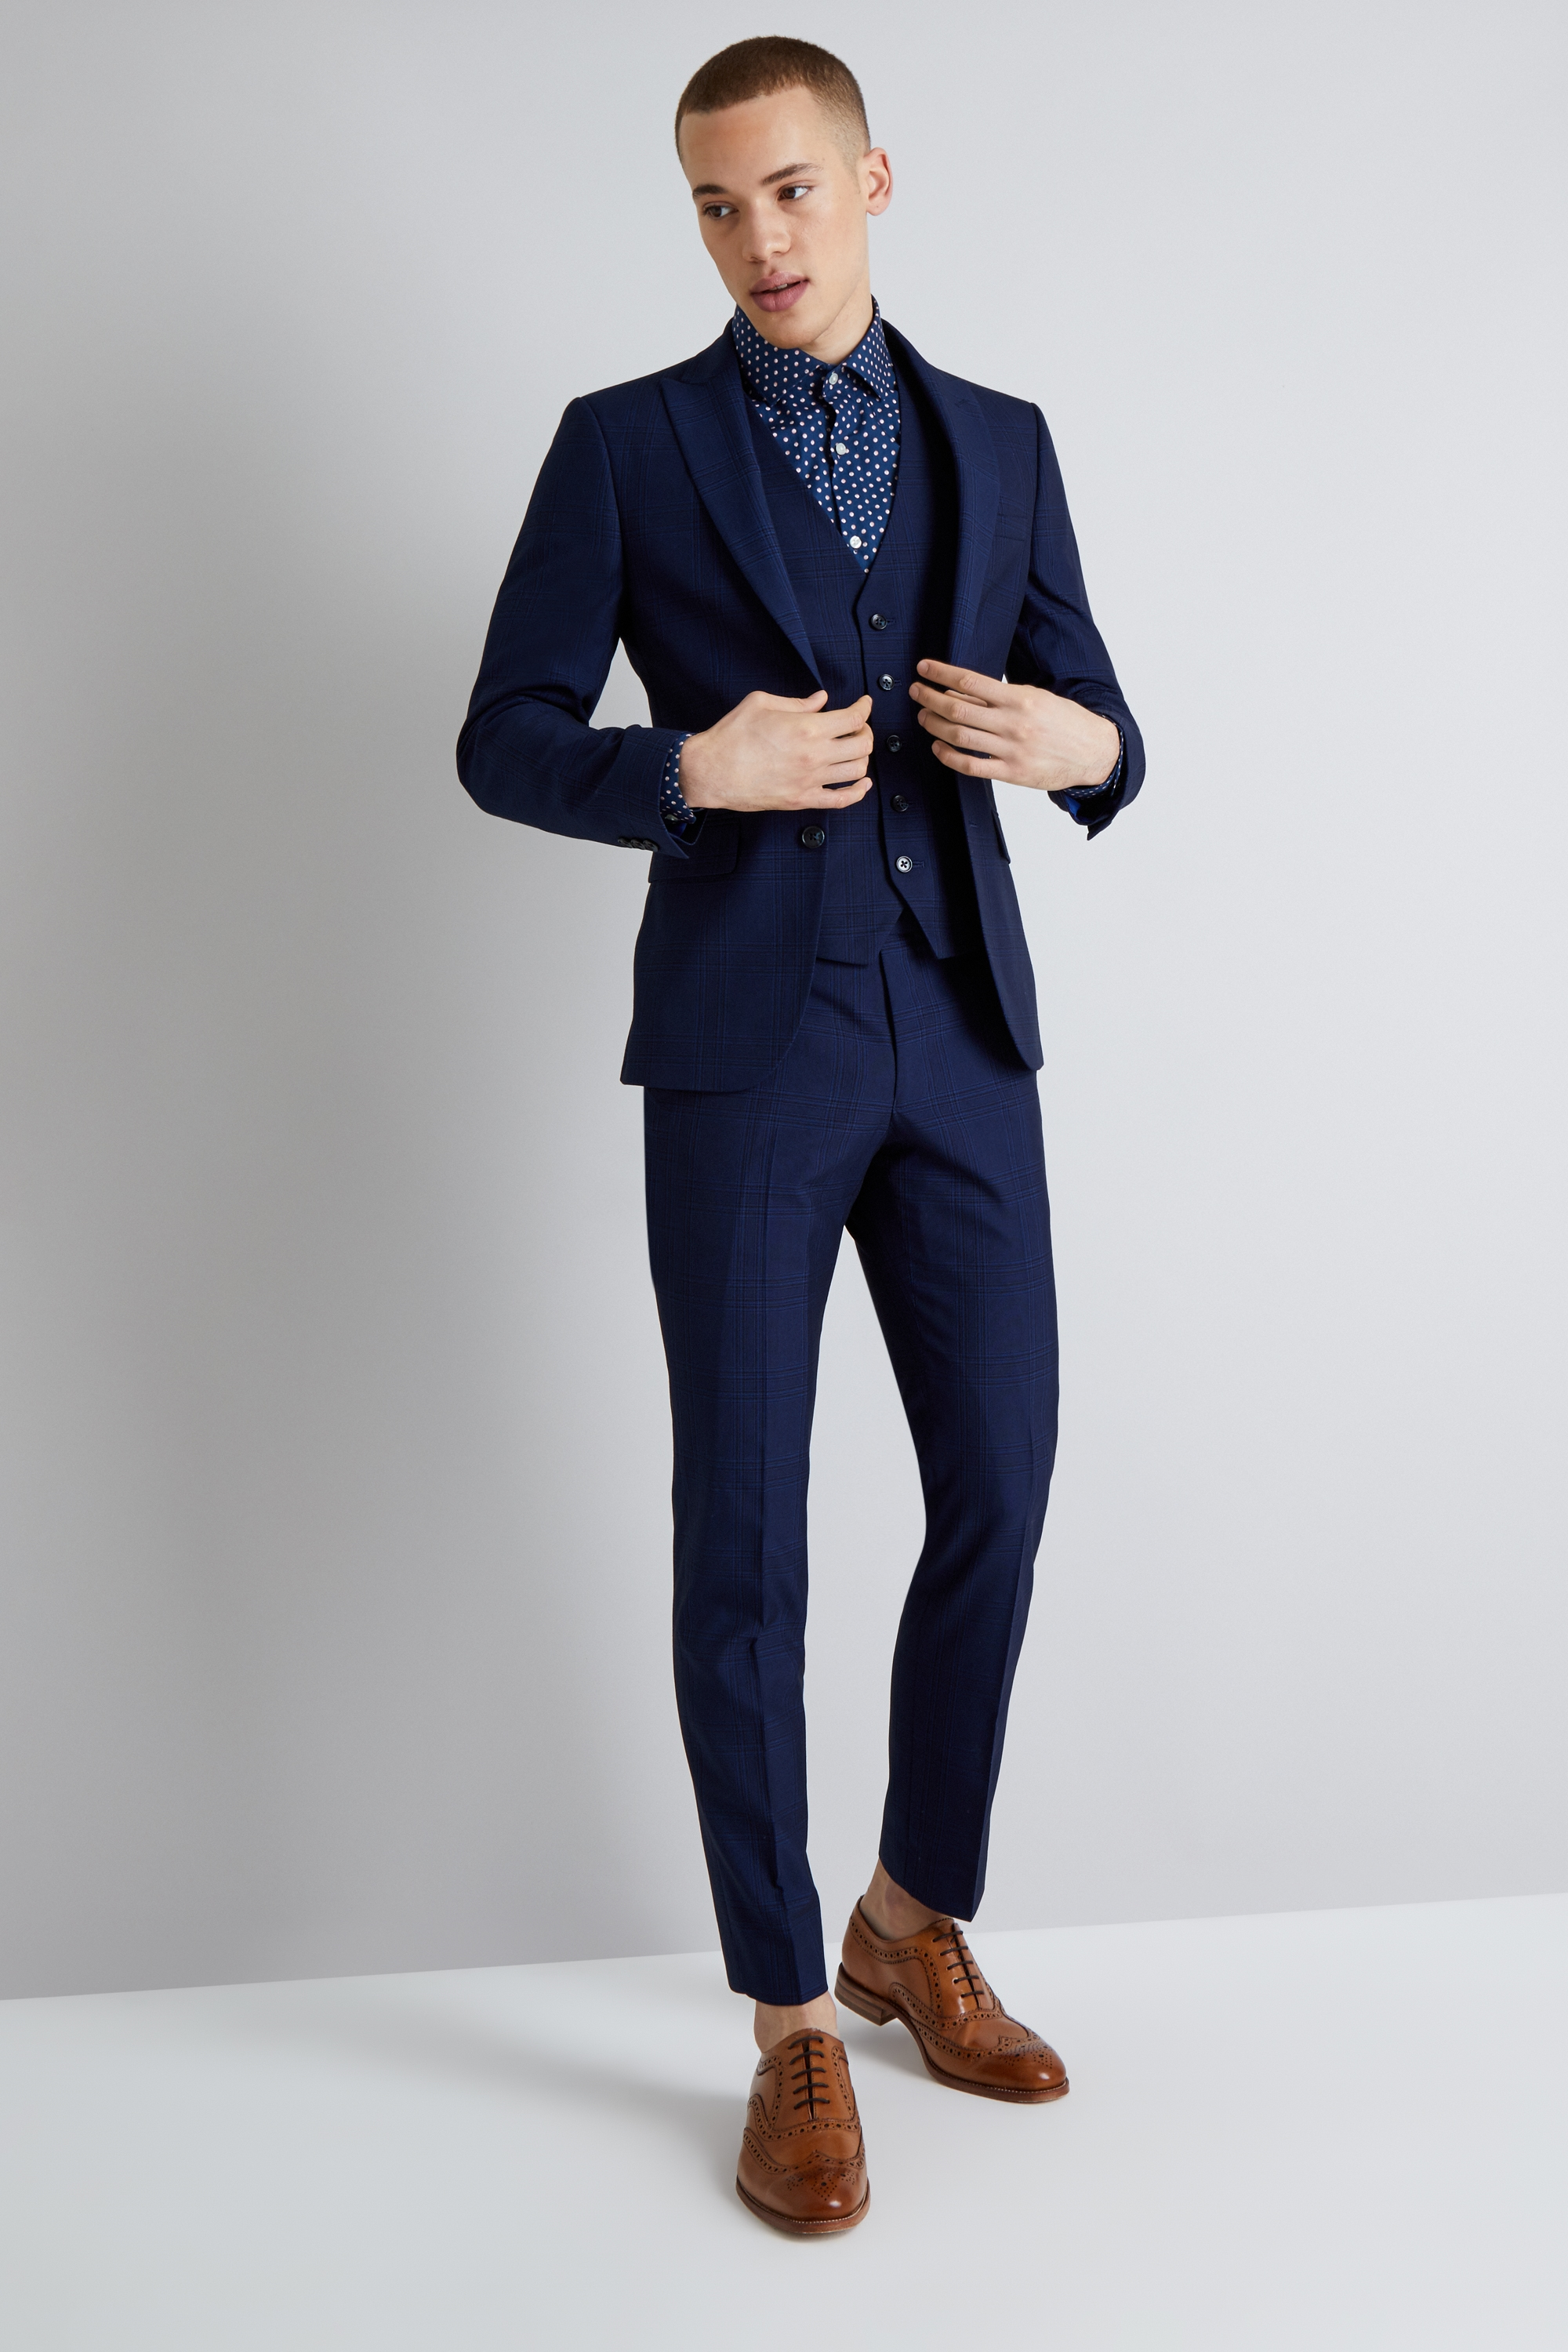 Men\'s Suits and Tuxedos - Shop The Latest Trends Online